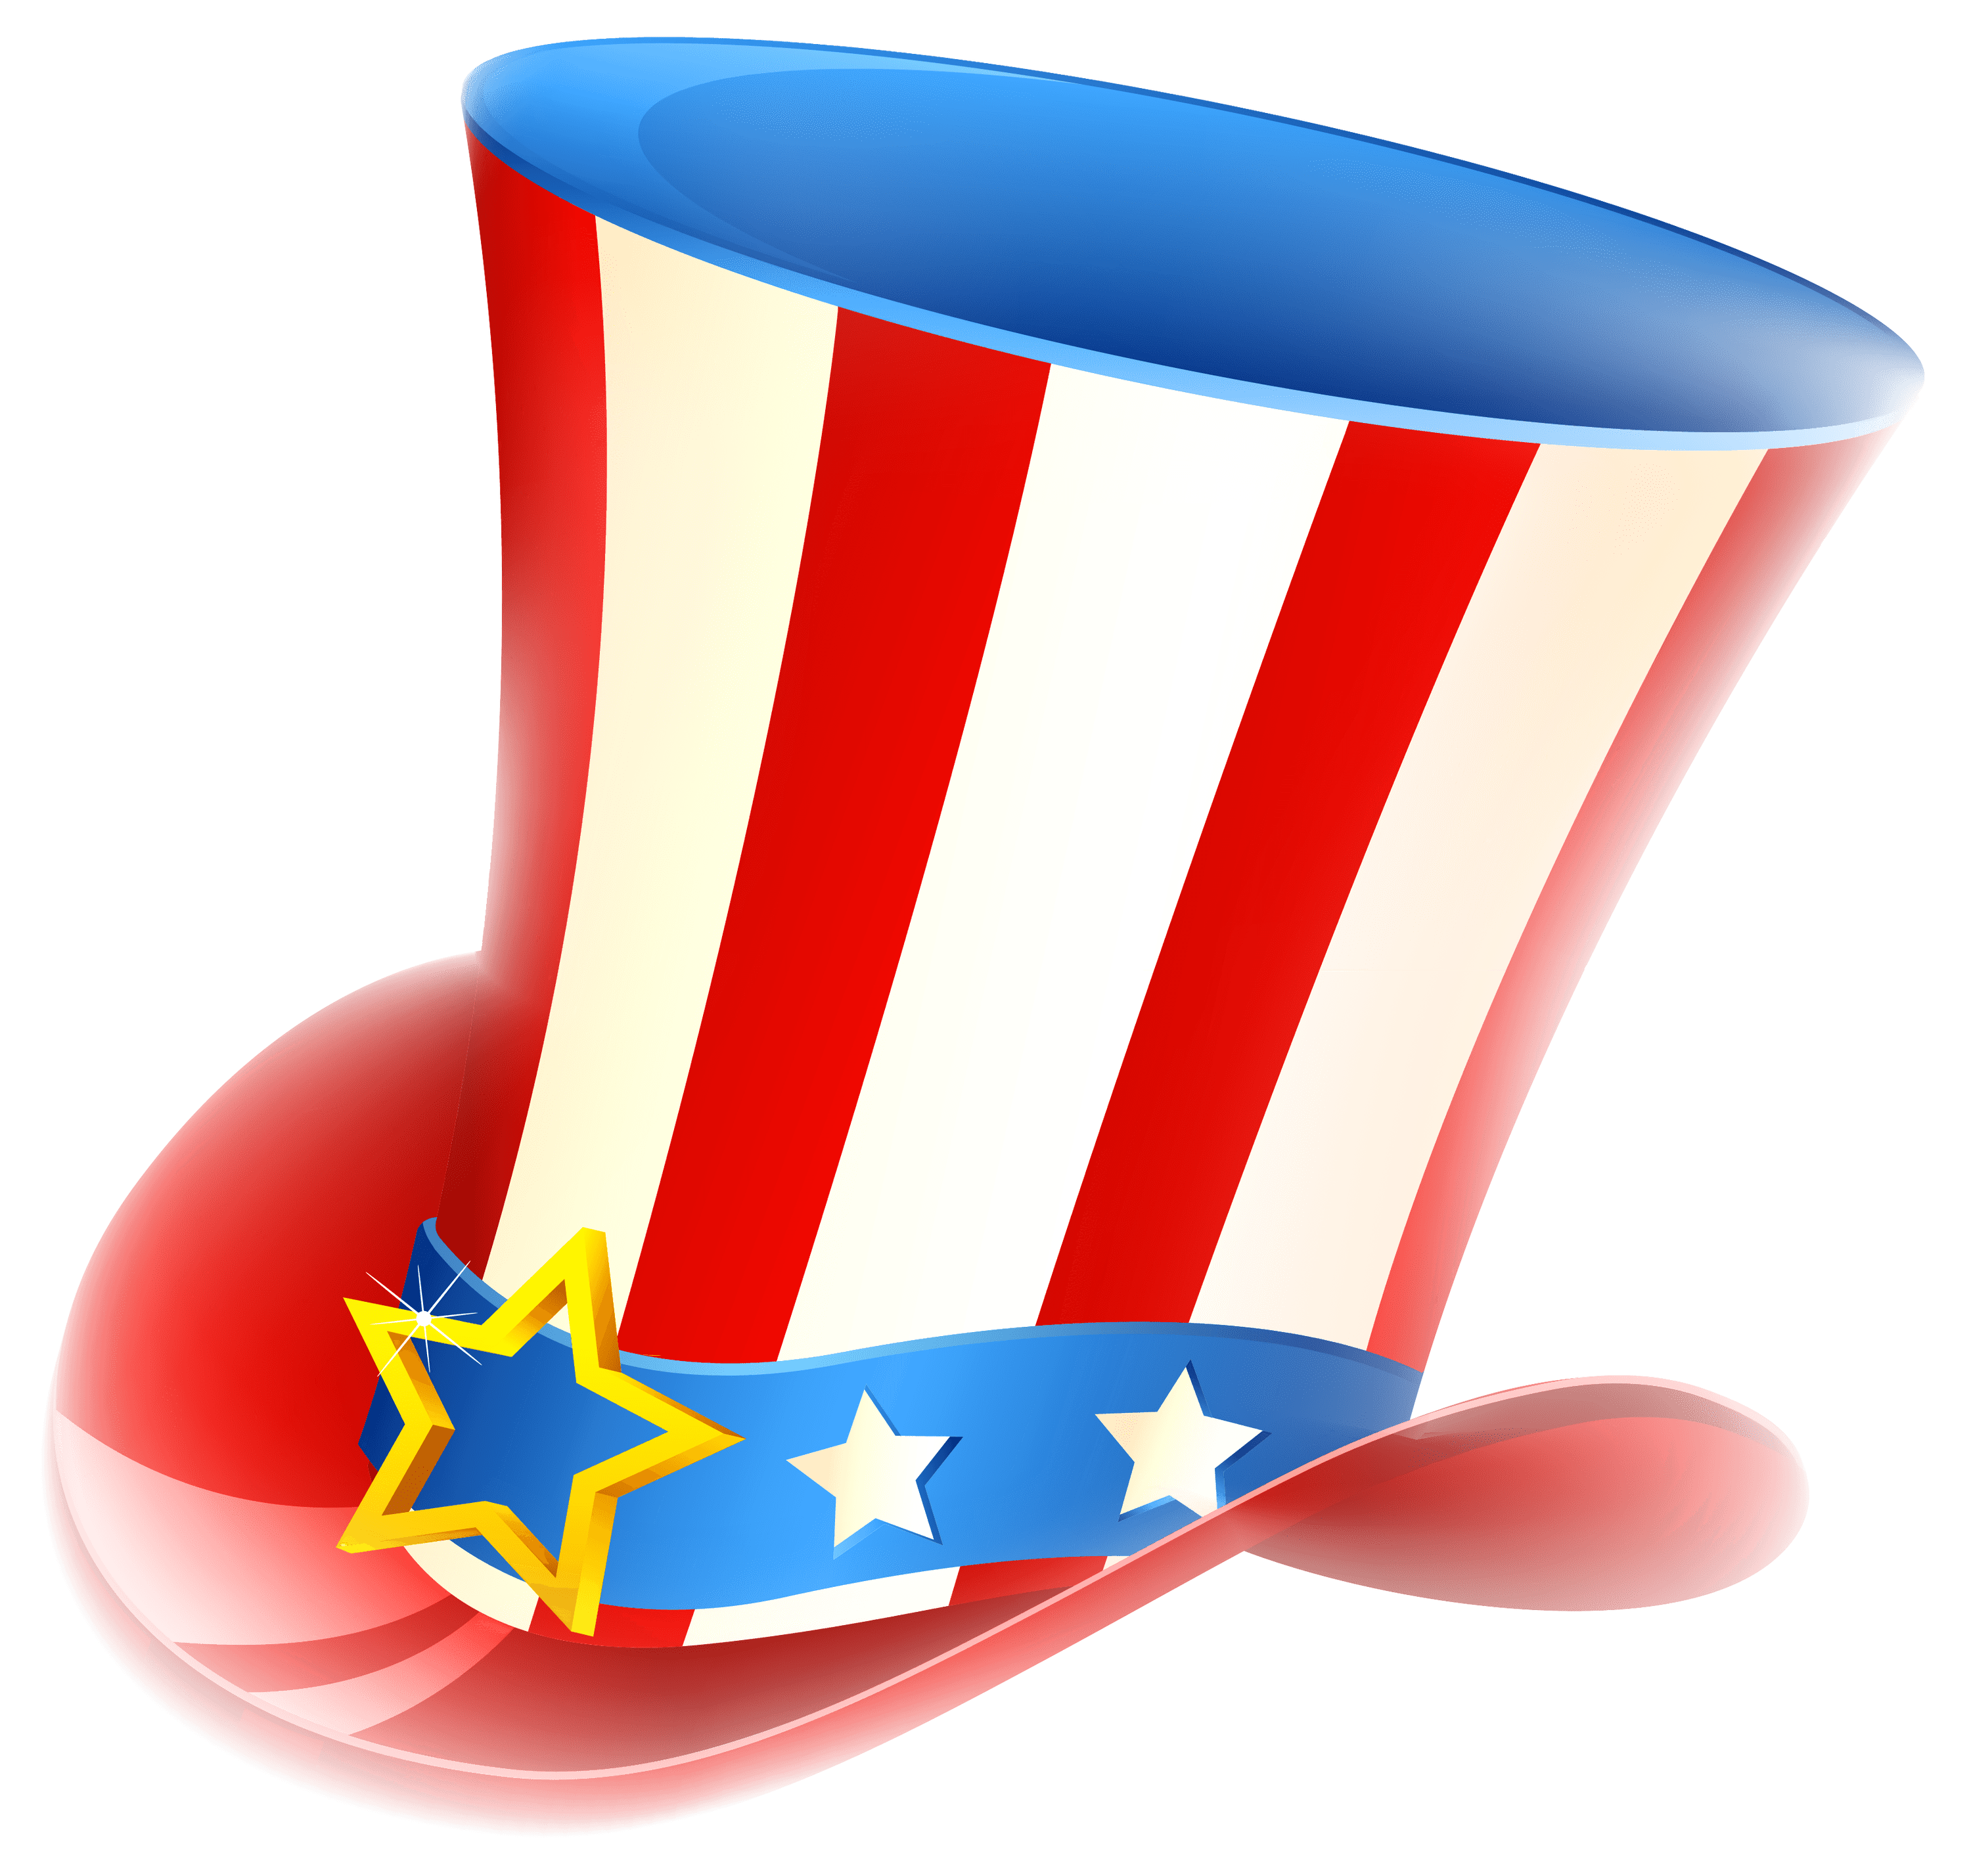 Usa 4th of july rocket clipart png download 4th Of July Png | Free download best 4th Of July Png on ClipArtMag.com png download